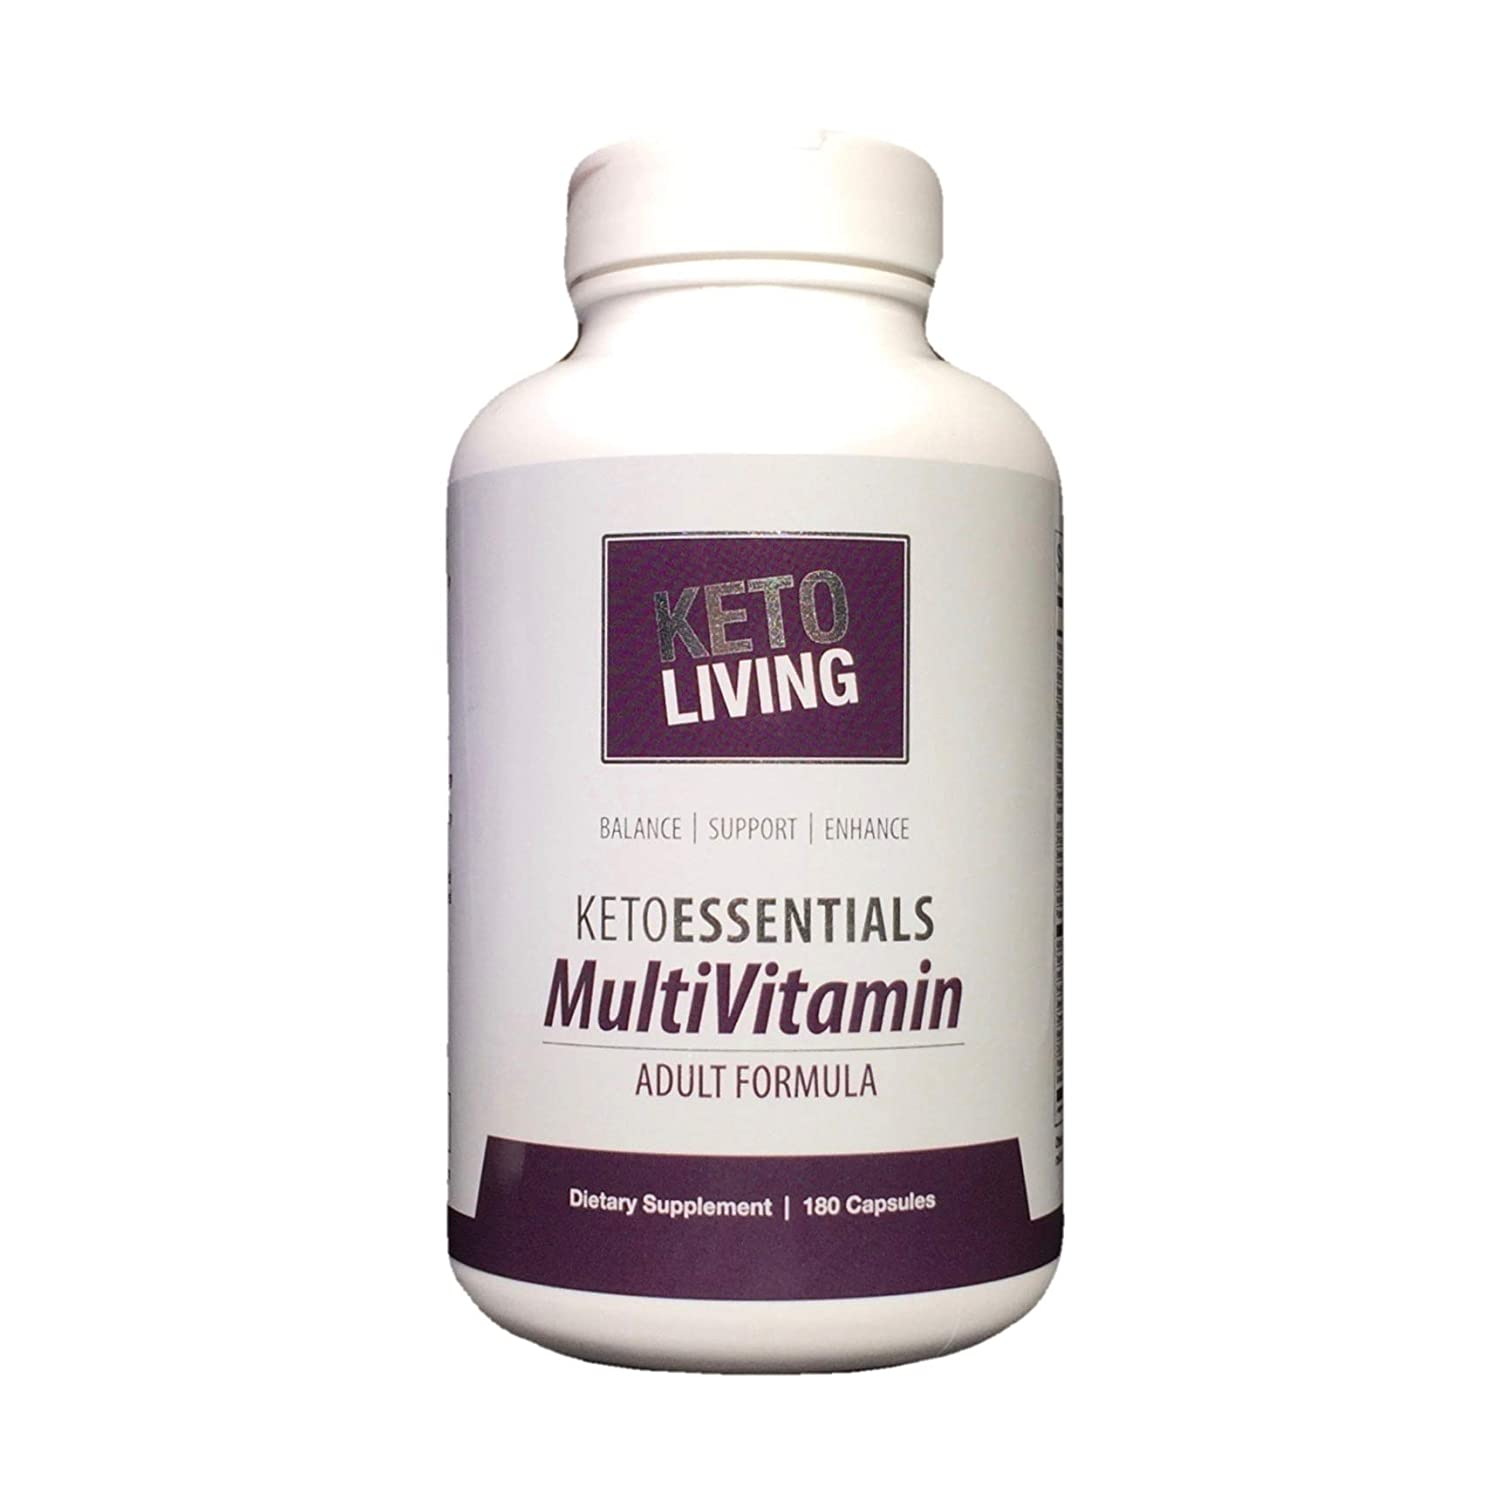 KetoLiving KetoEssentials Multivitamin for Adults – 180 Capsules – Supports Healthy Glucose Insulin Levels – Promotes Keto LCHF Diet Lifestyle – Gluten-Free – 30 Servings